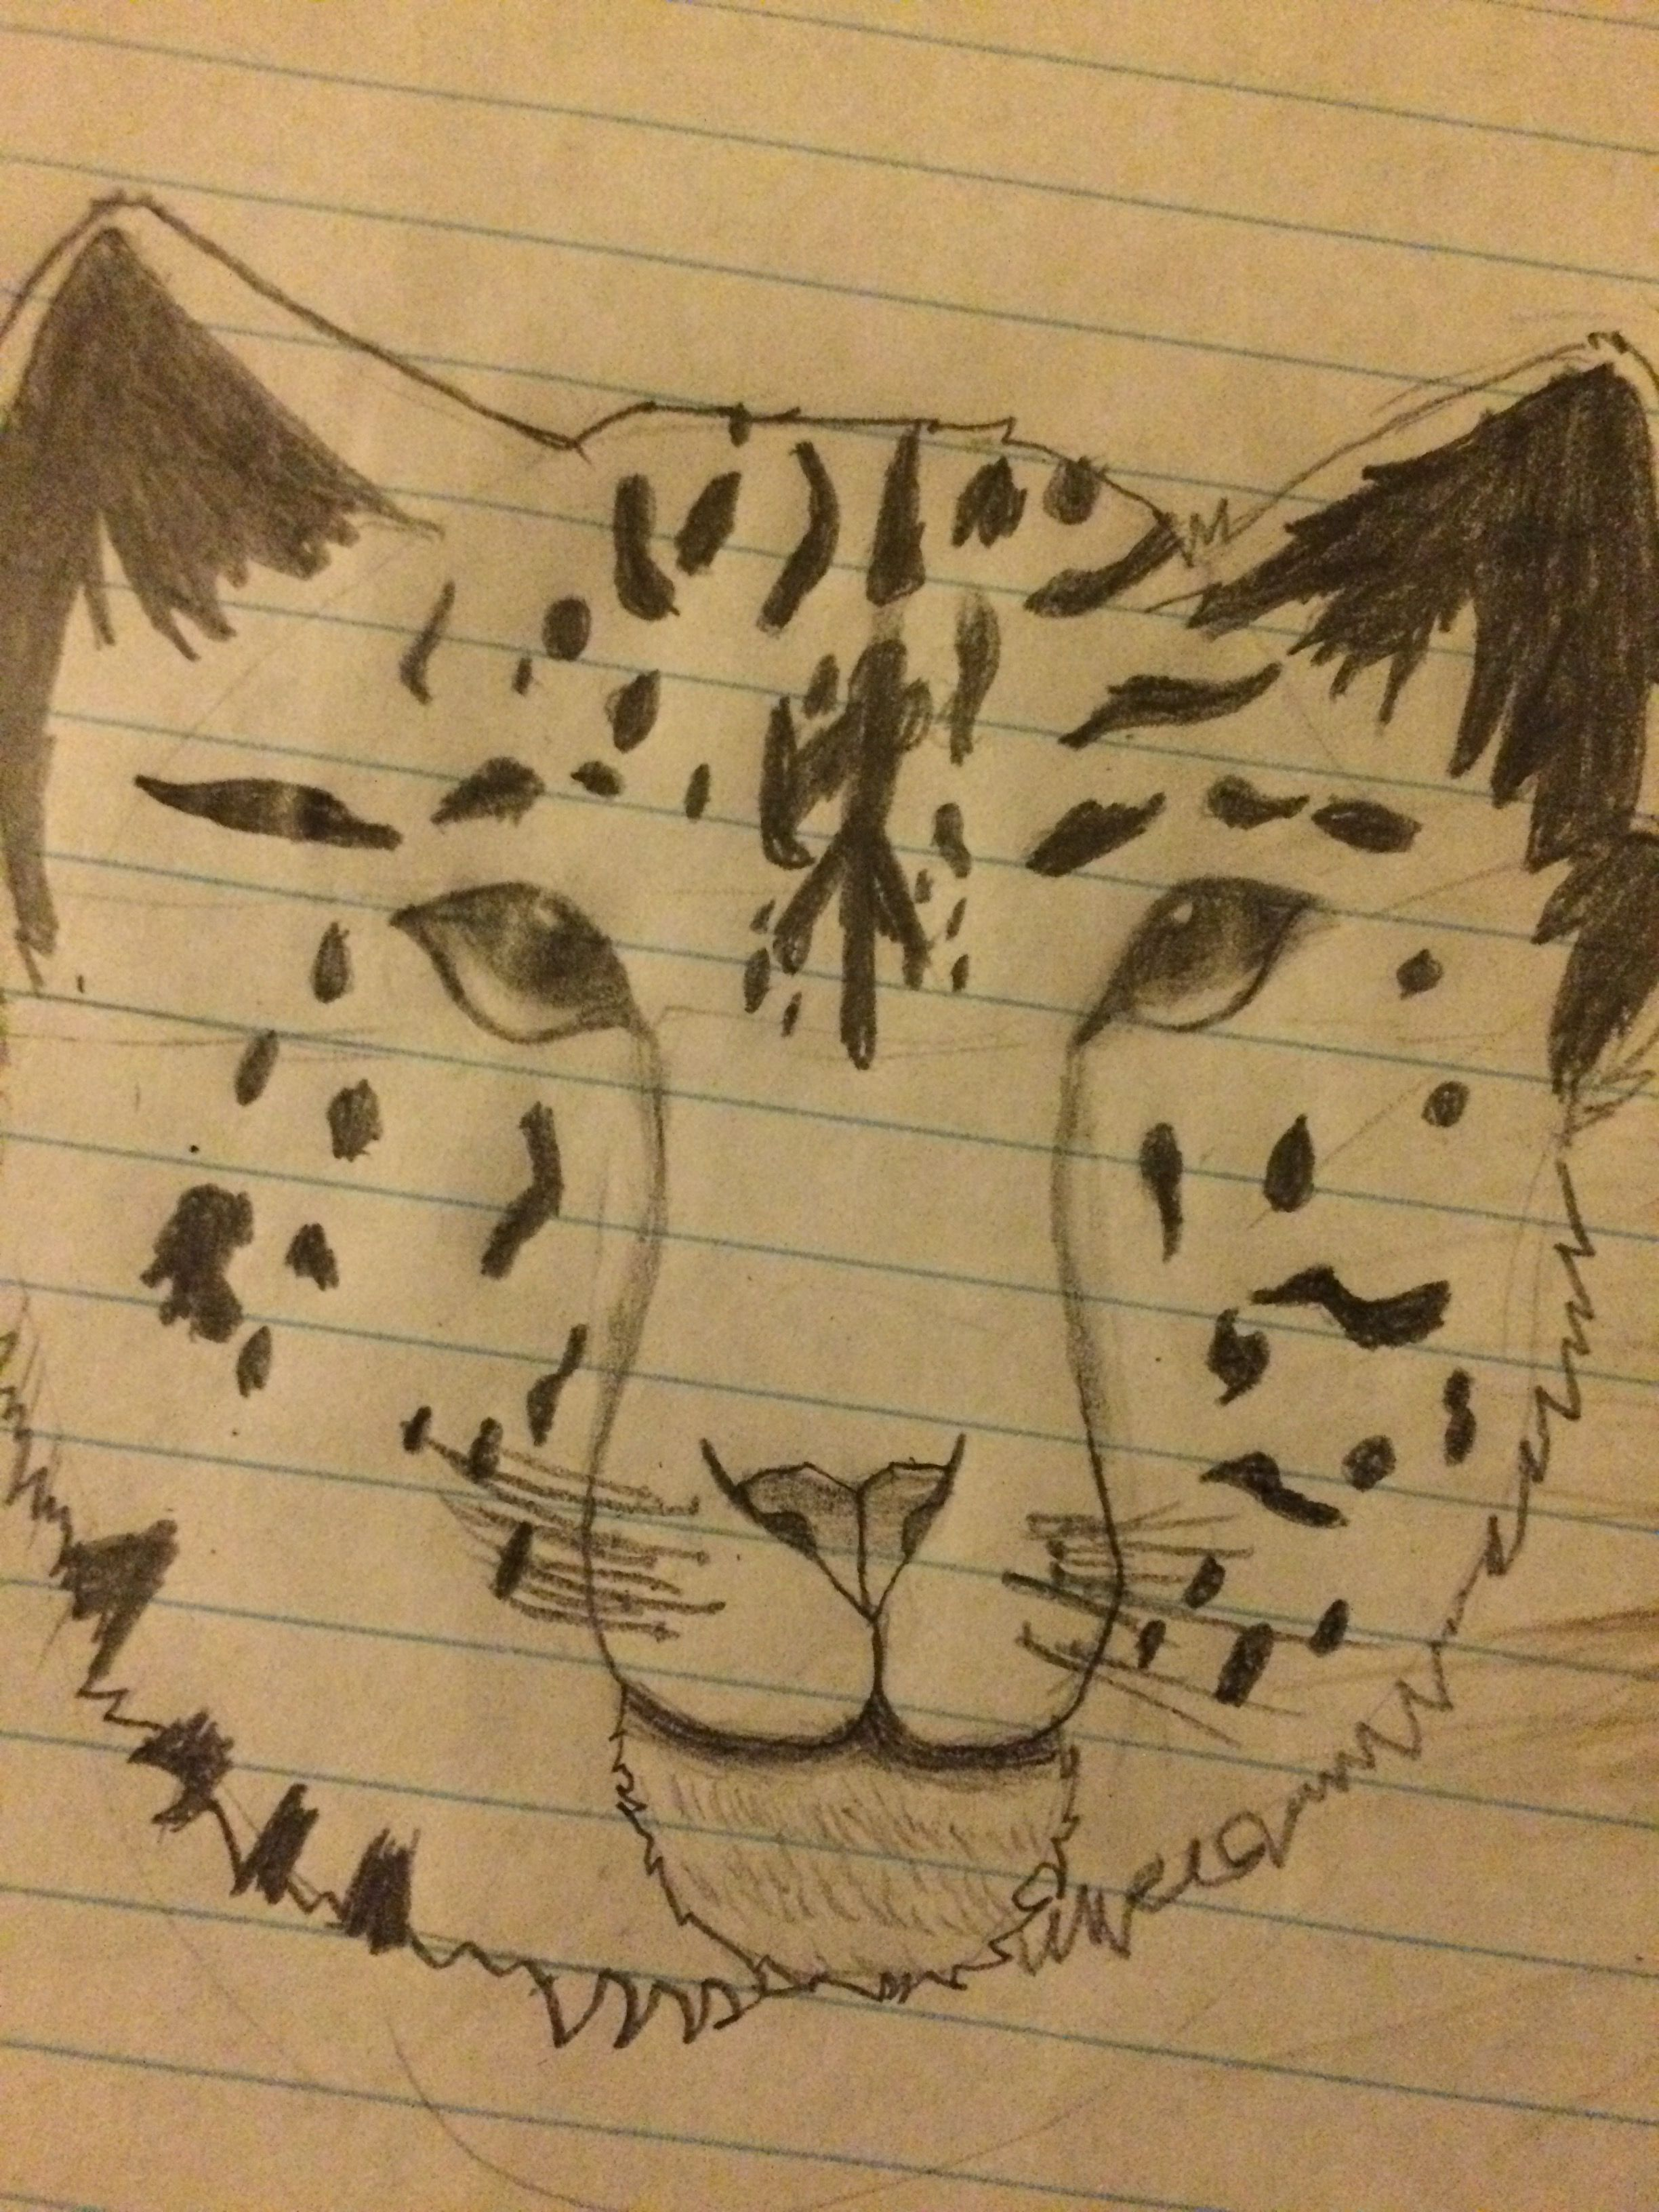 The Hardest Drawing In The World : hardest, drawing, world, Here's, Drawing, Project,, Leopard., Probably, Hardest, Made., Drawings,, Drawings